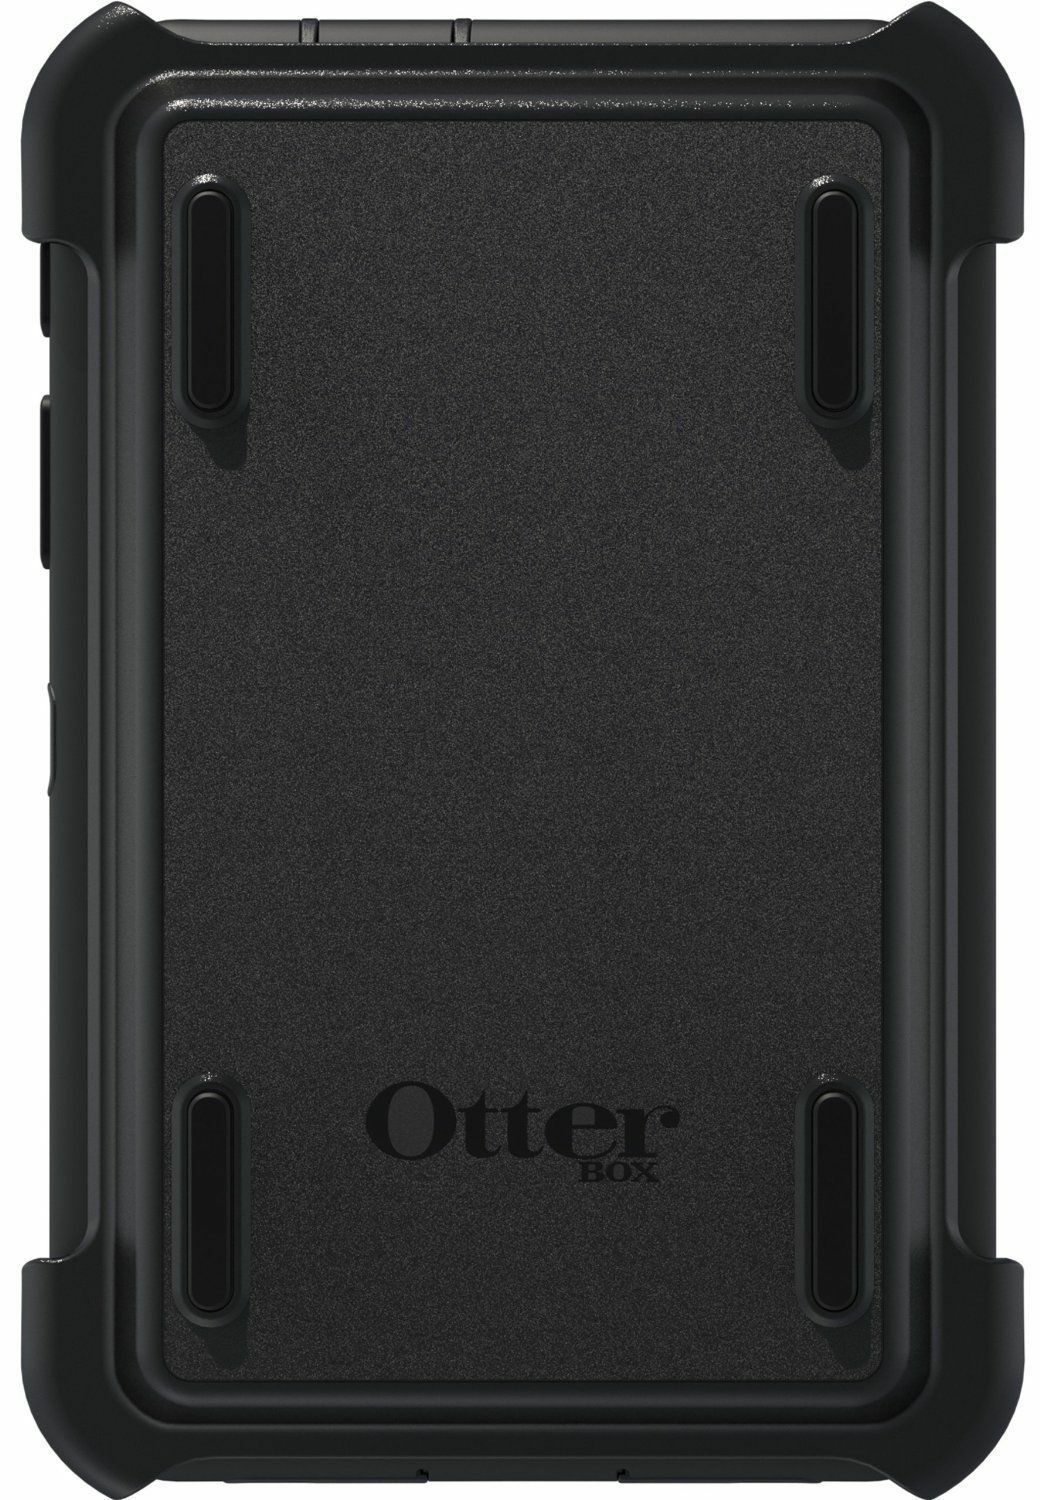 Otterbox Defender Samsung Galaxy Tab Case Cover